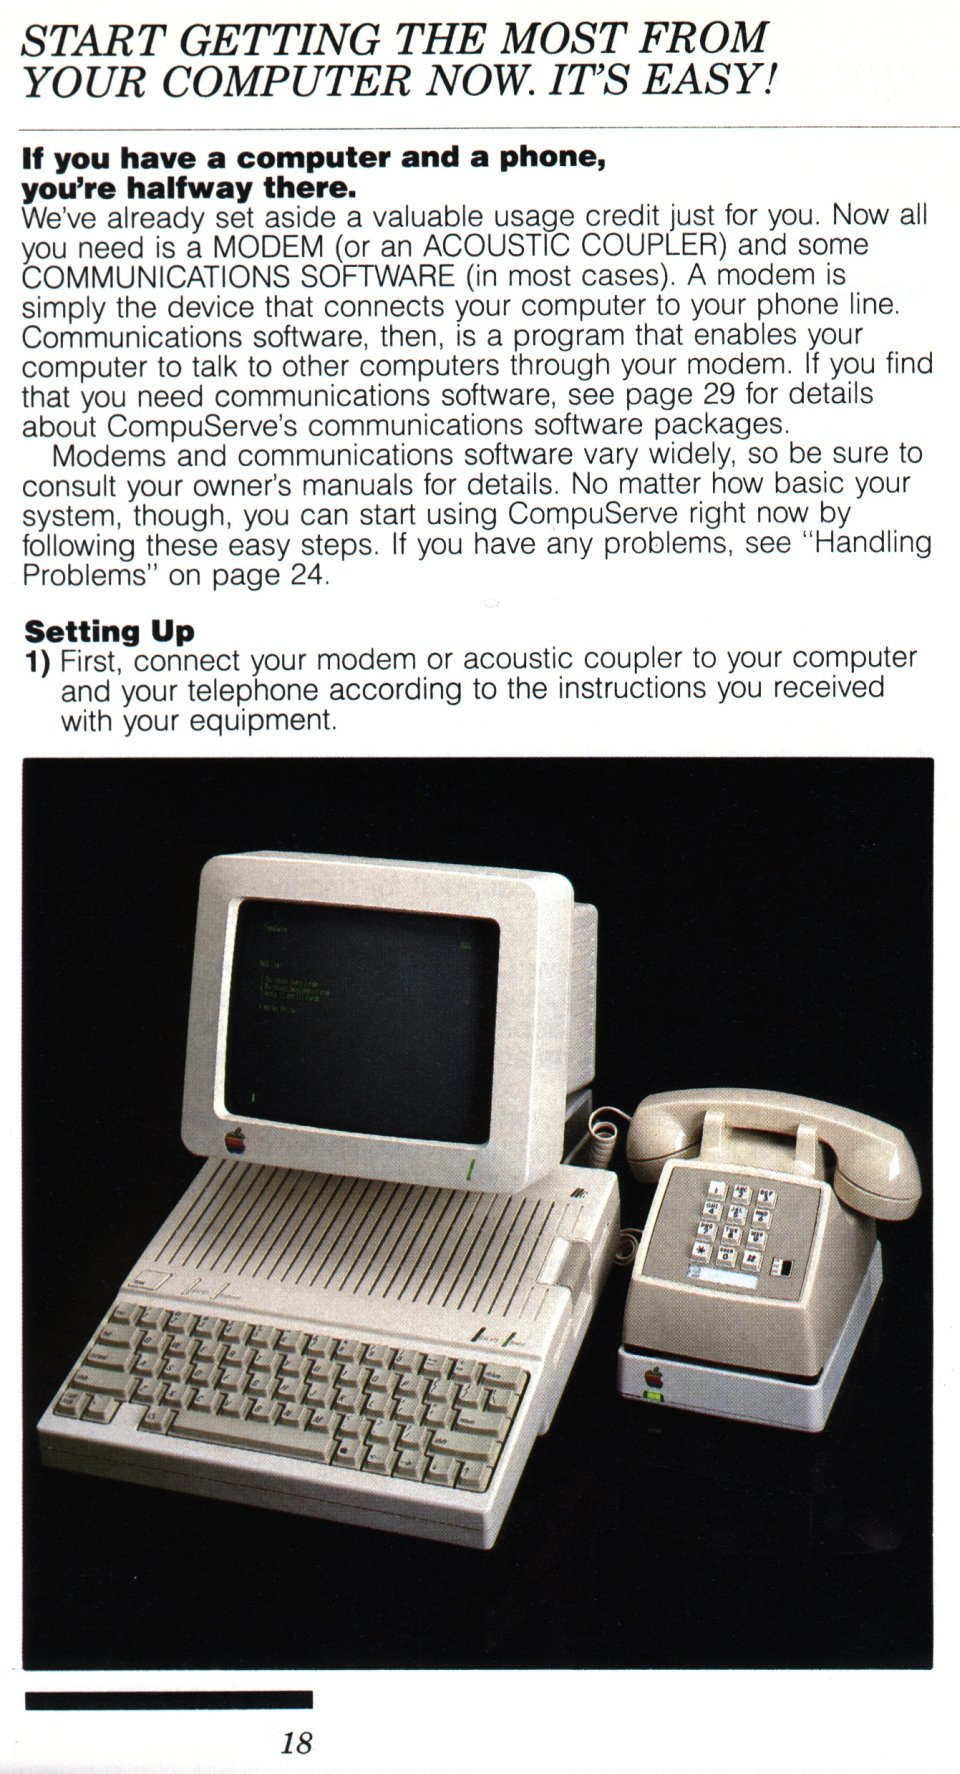 [CompuServe IntroPak page 18/44  Start Getting the Most from Your Computer Now, It's Easy! (1/6)]